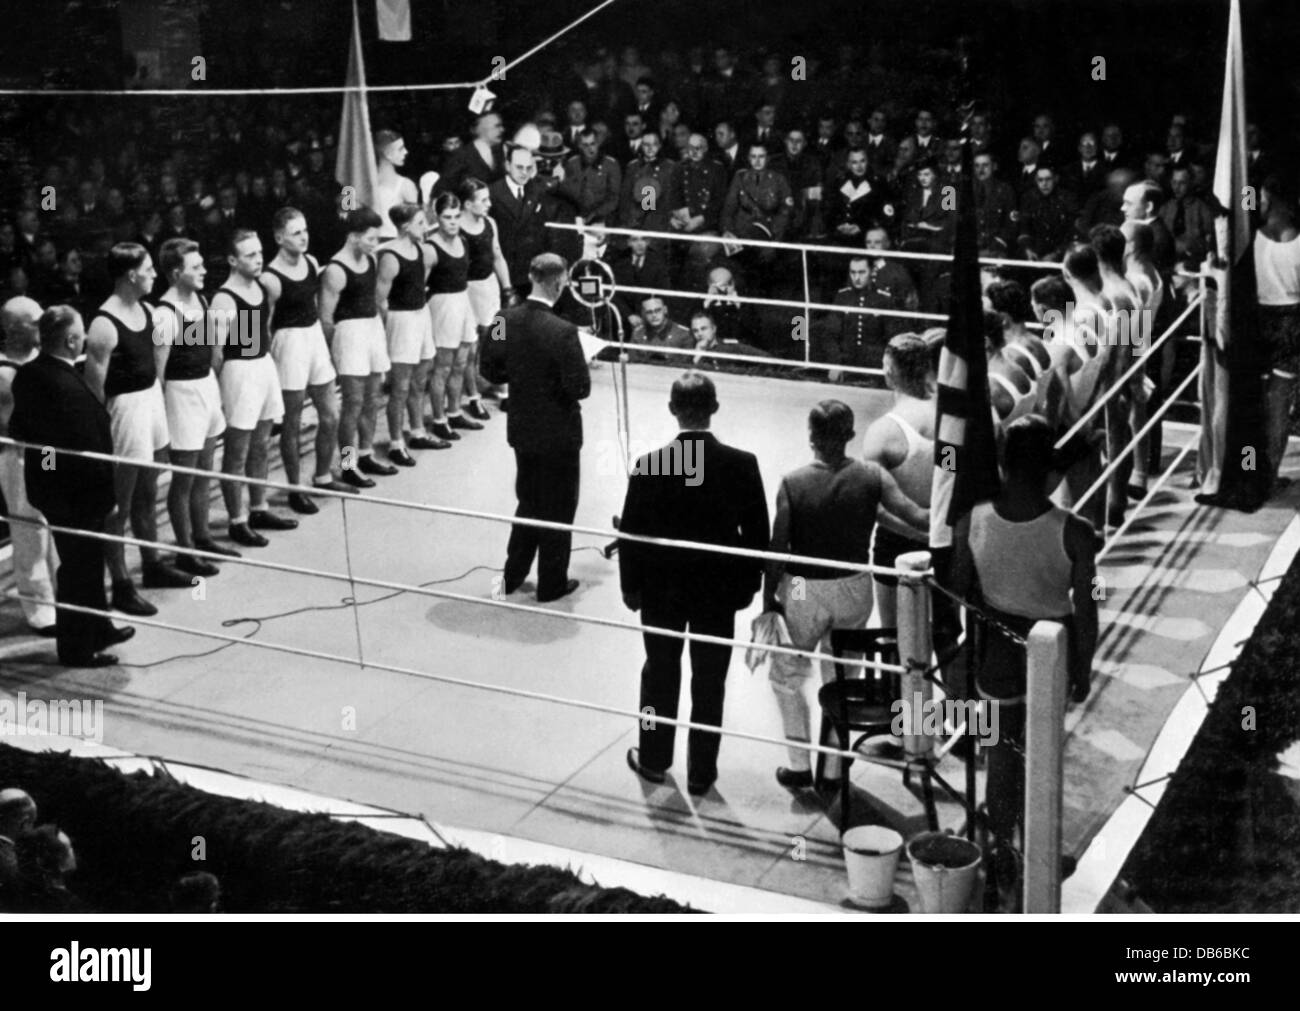 sports, boxing, competition Germany versus Poland, Essen, 1936, Additional-Rights-Clearences-NA - Stock Image